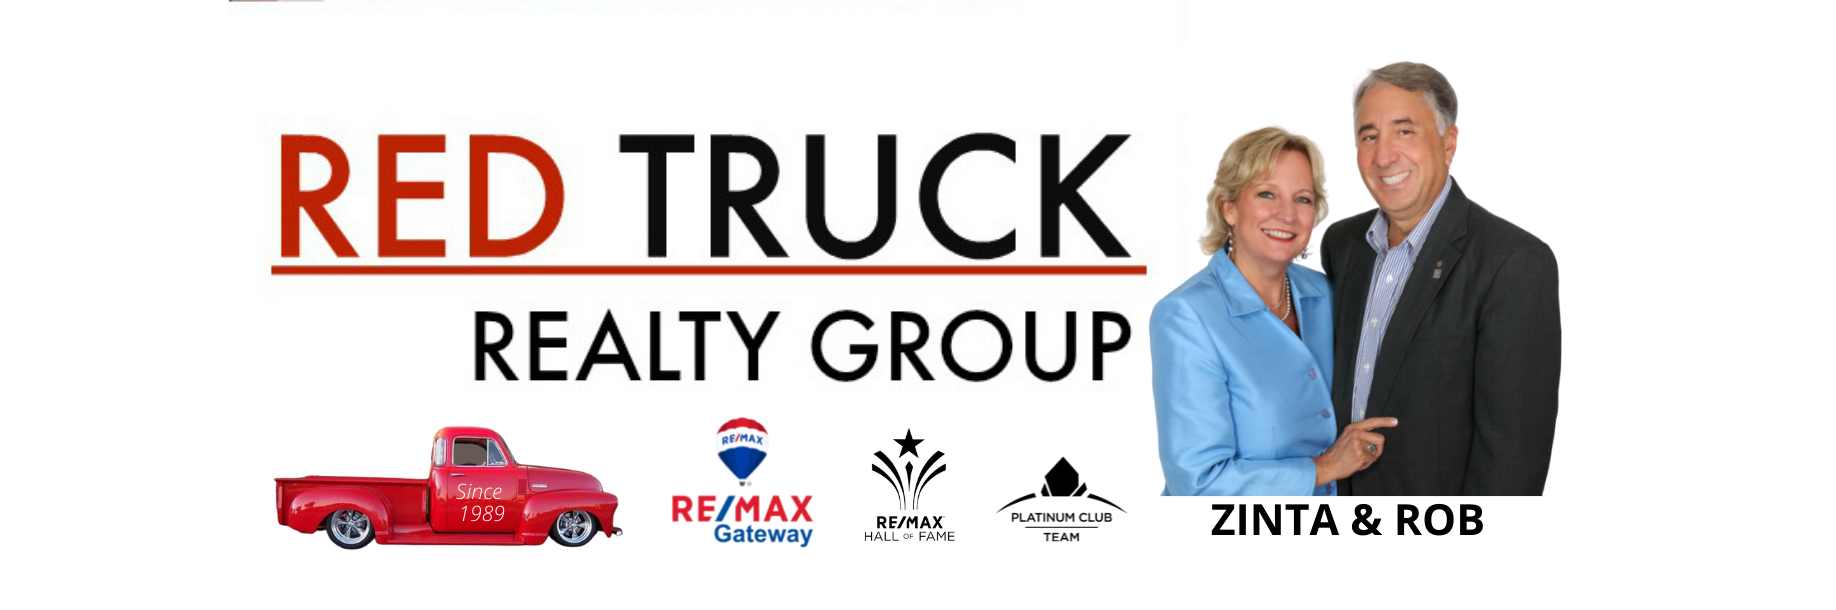 Red Truck Realty Group